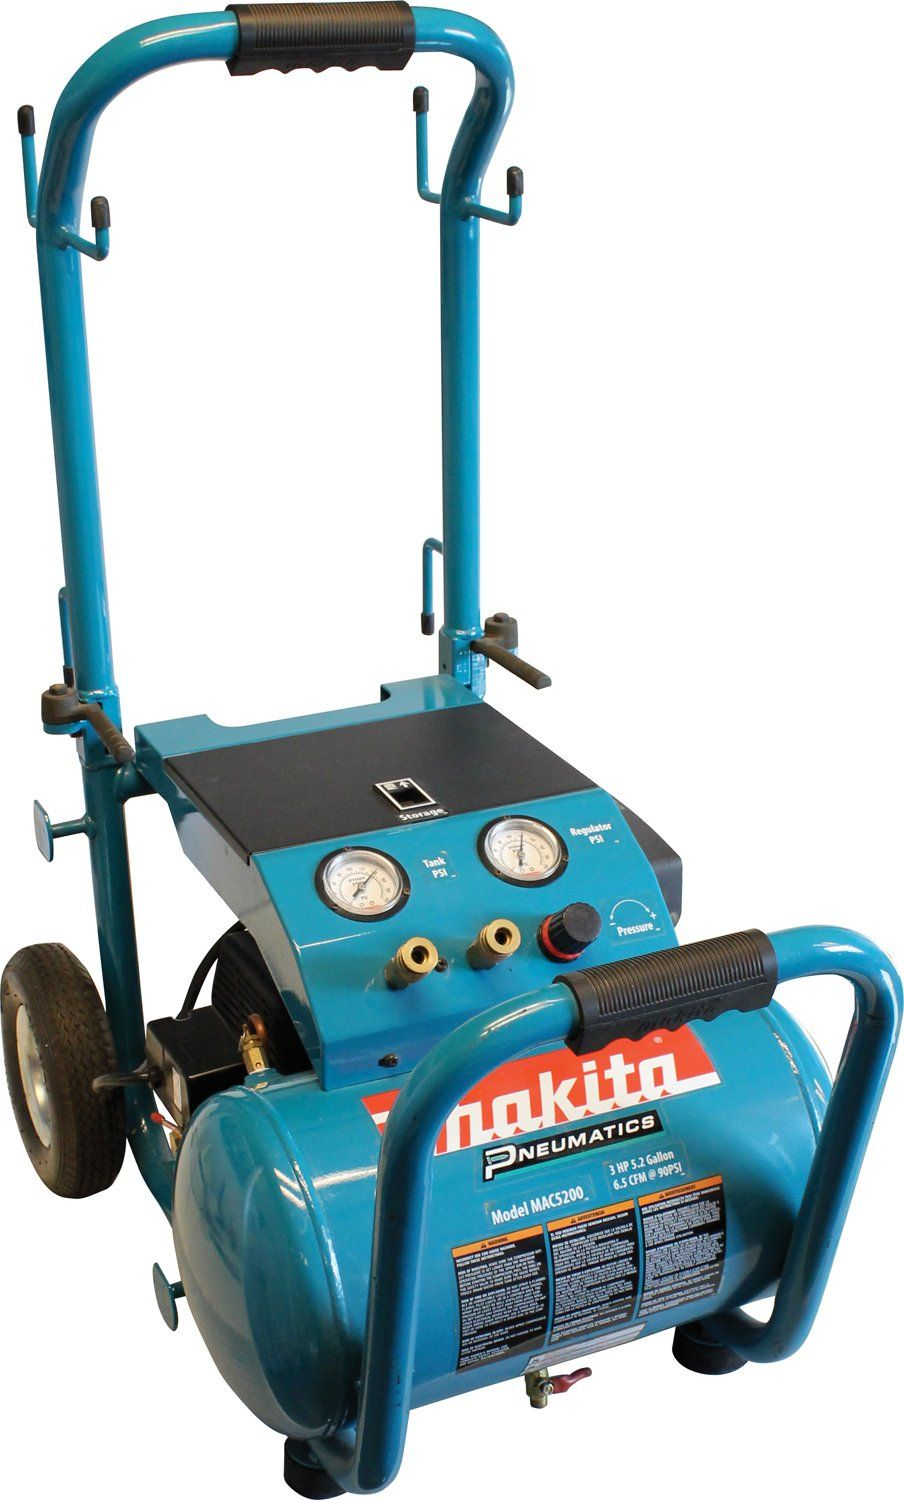 Makita MAC5200 Air Compressor Review Best portable air